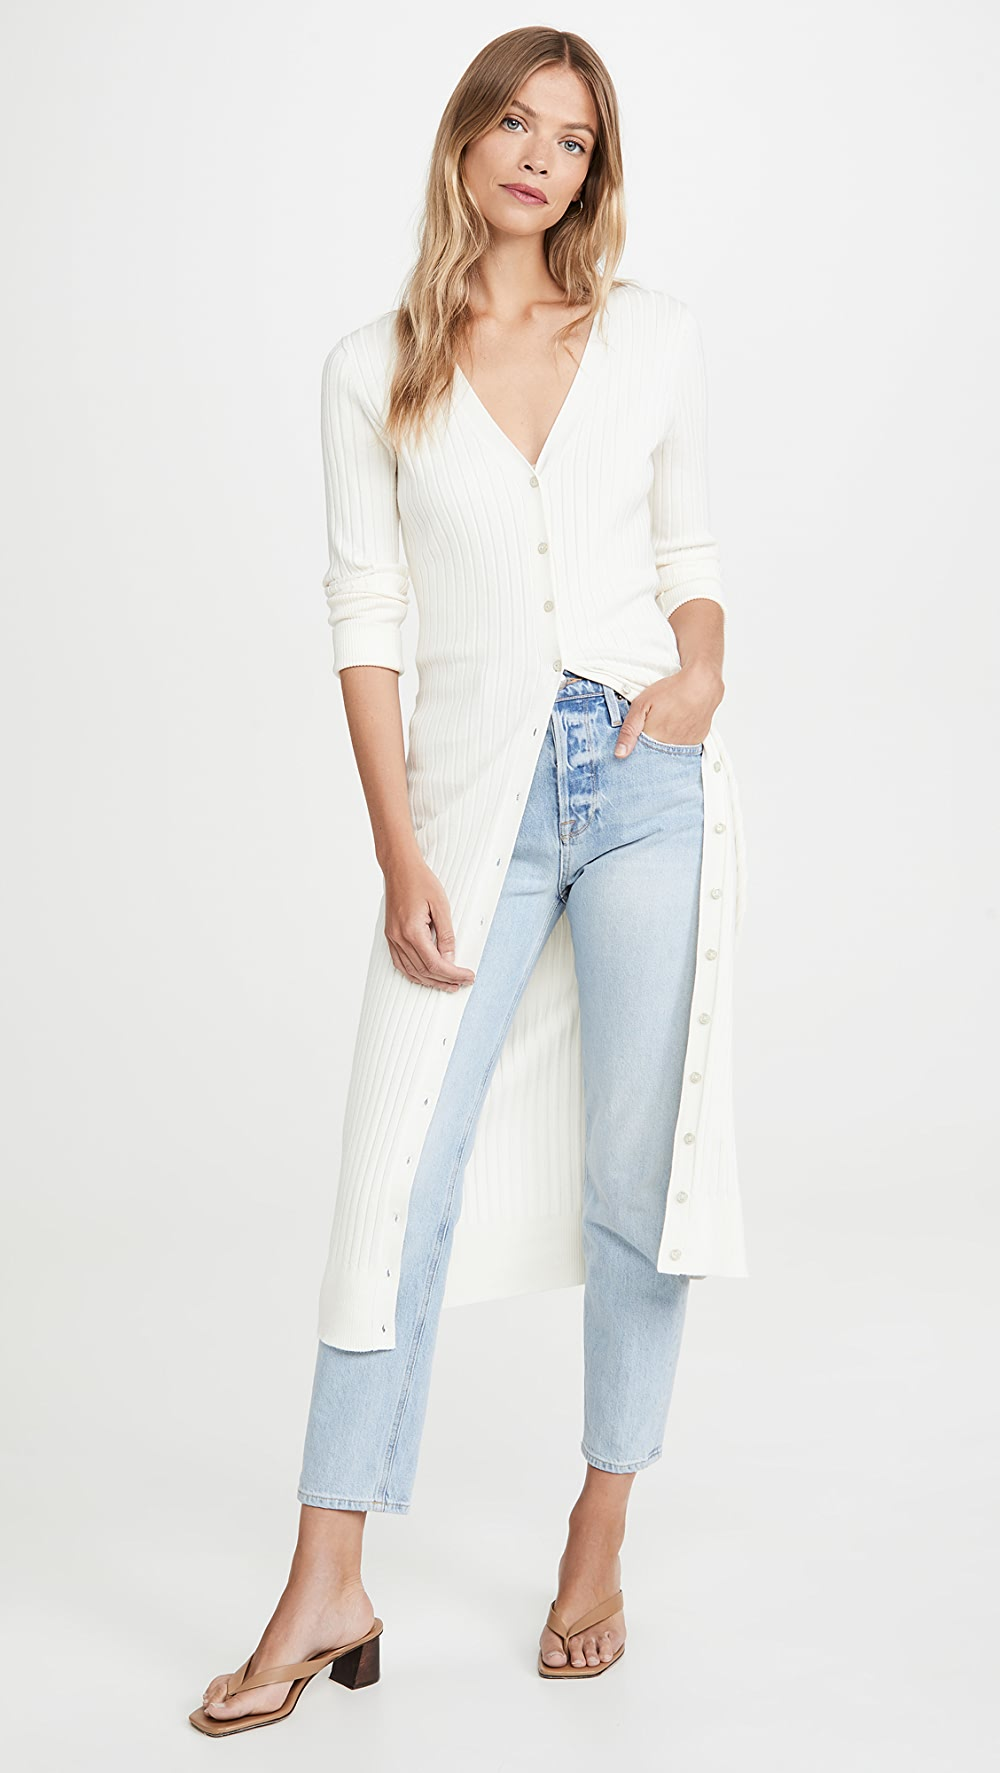 100% True 525 - Wide Rib Long Cardigan To Make One Feel At Ease And Energetic